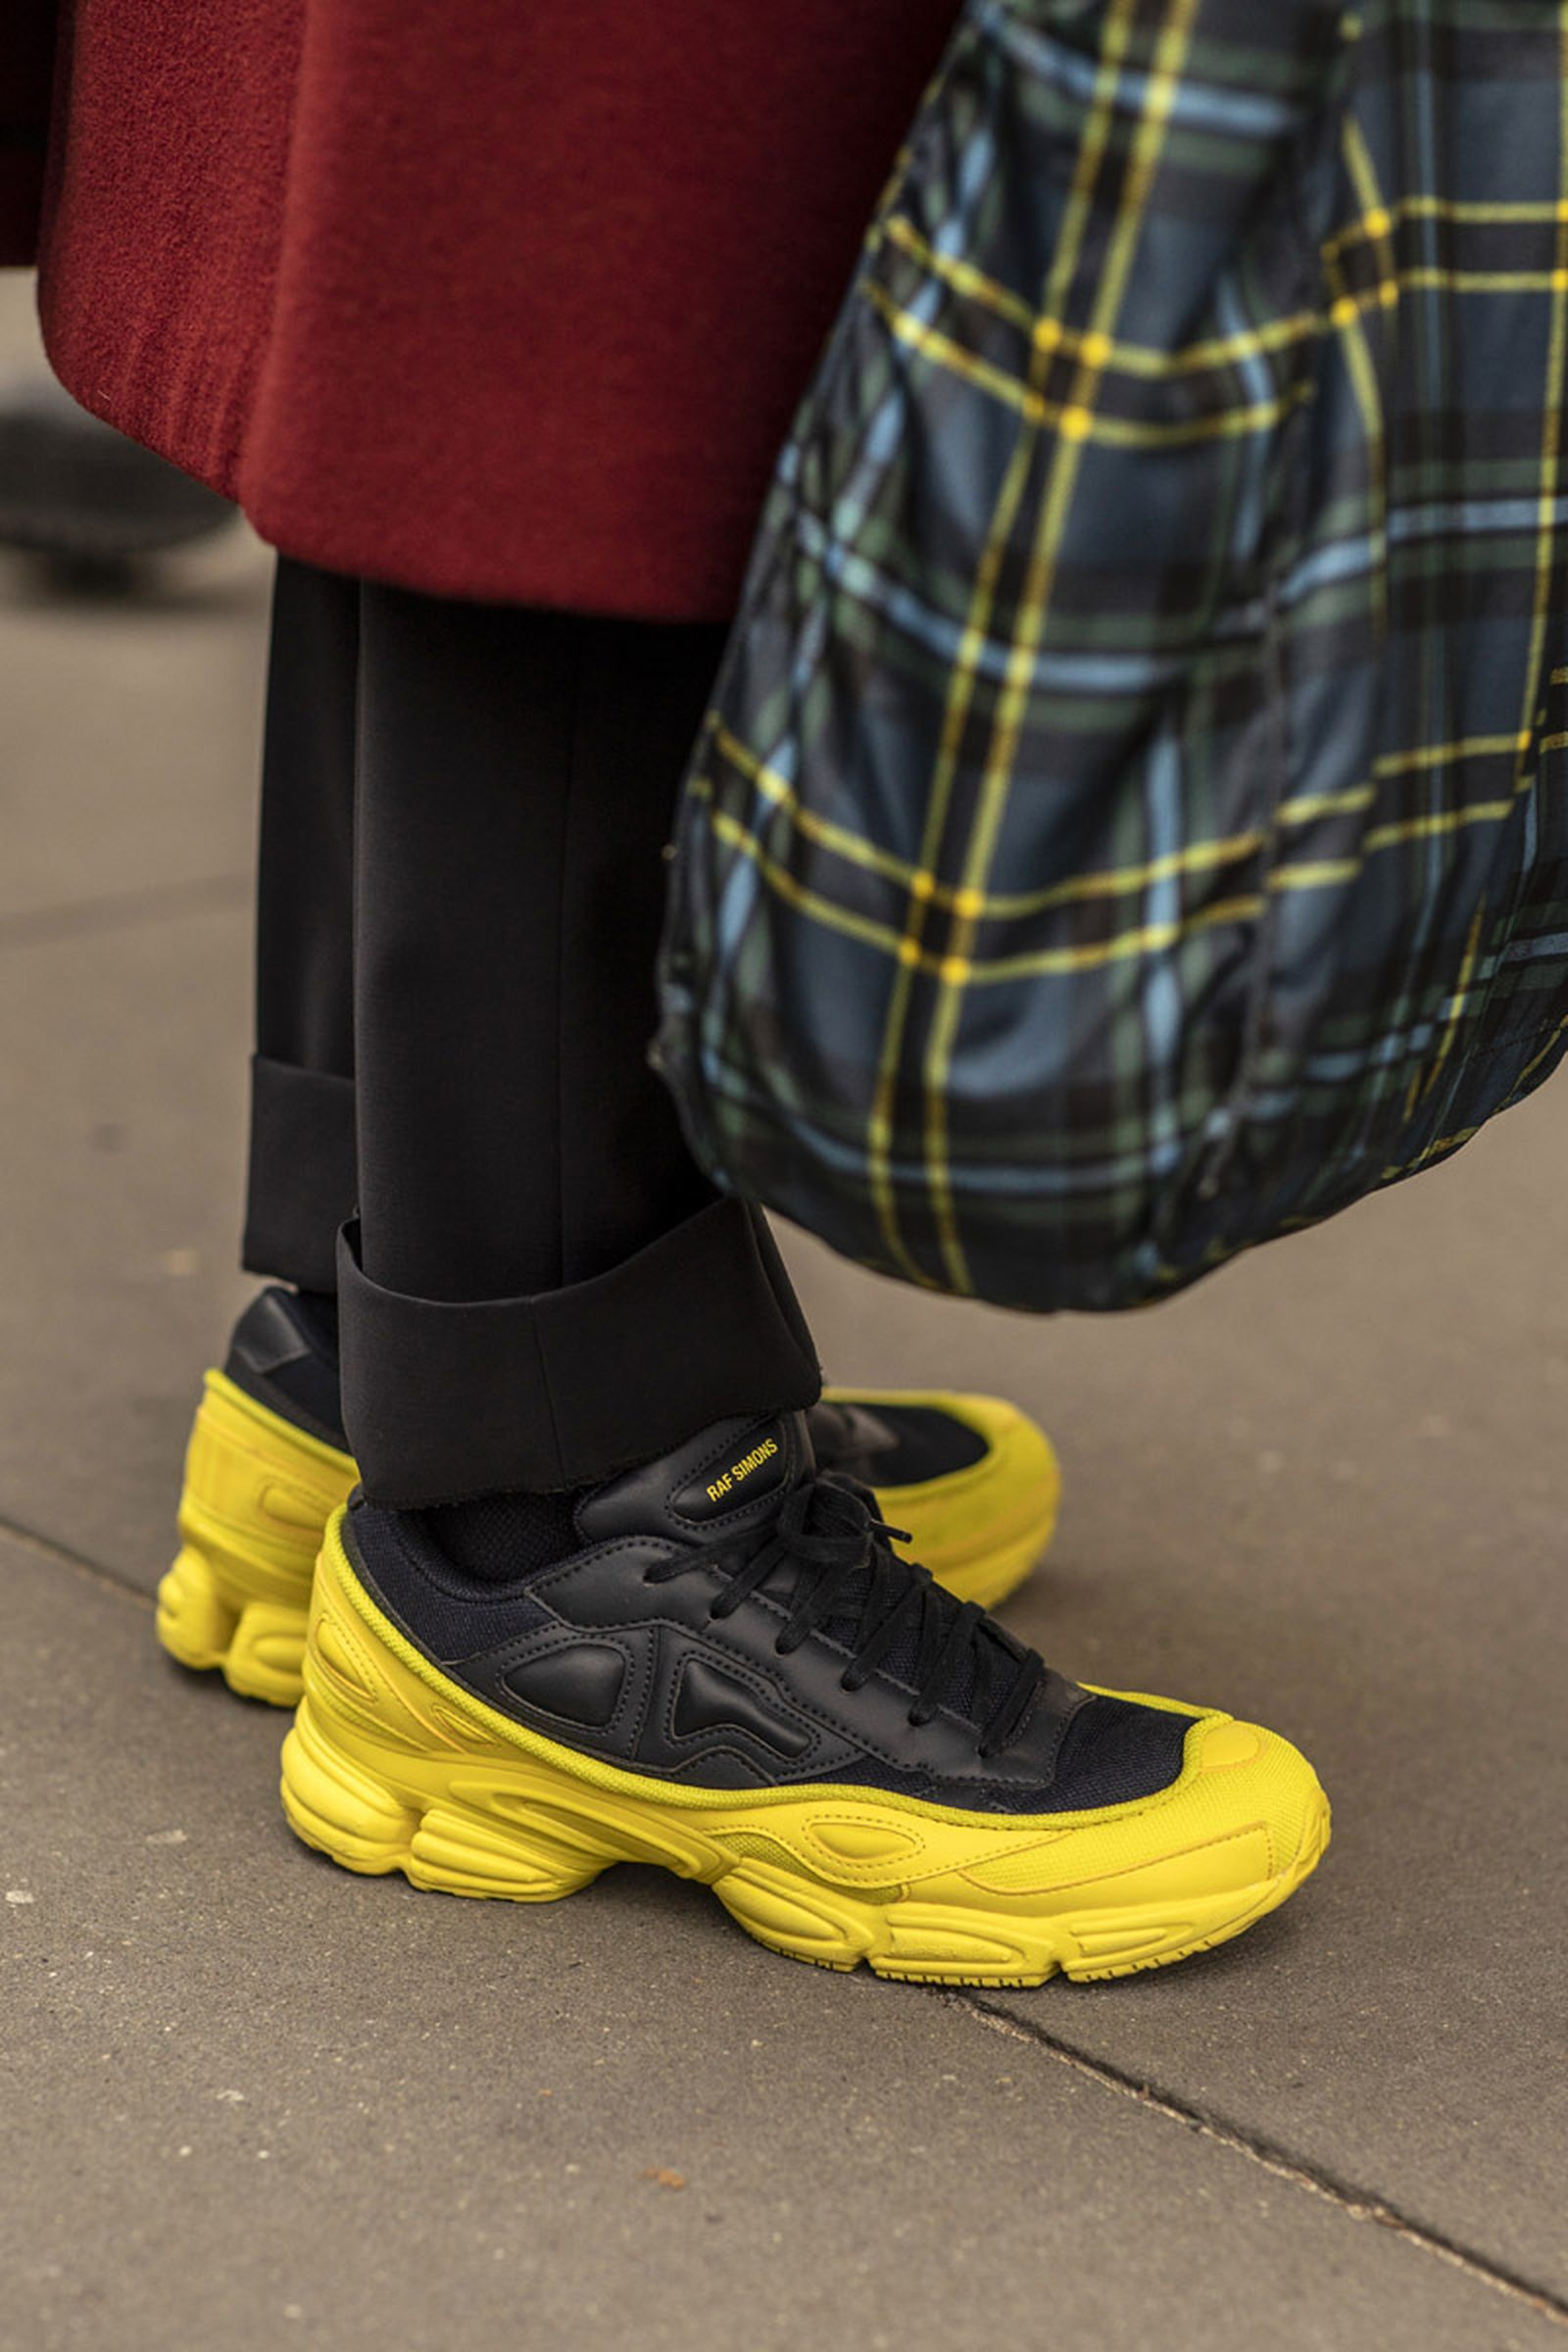 new york fashion week fw19 sneaker street style Balenciaga salomon